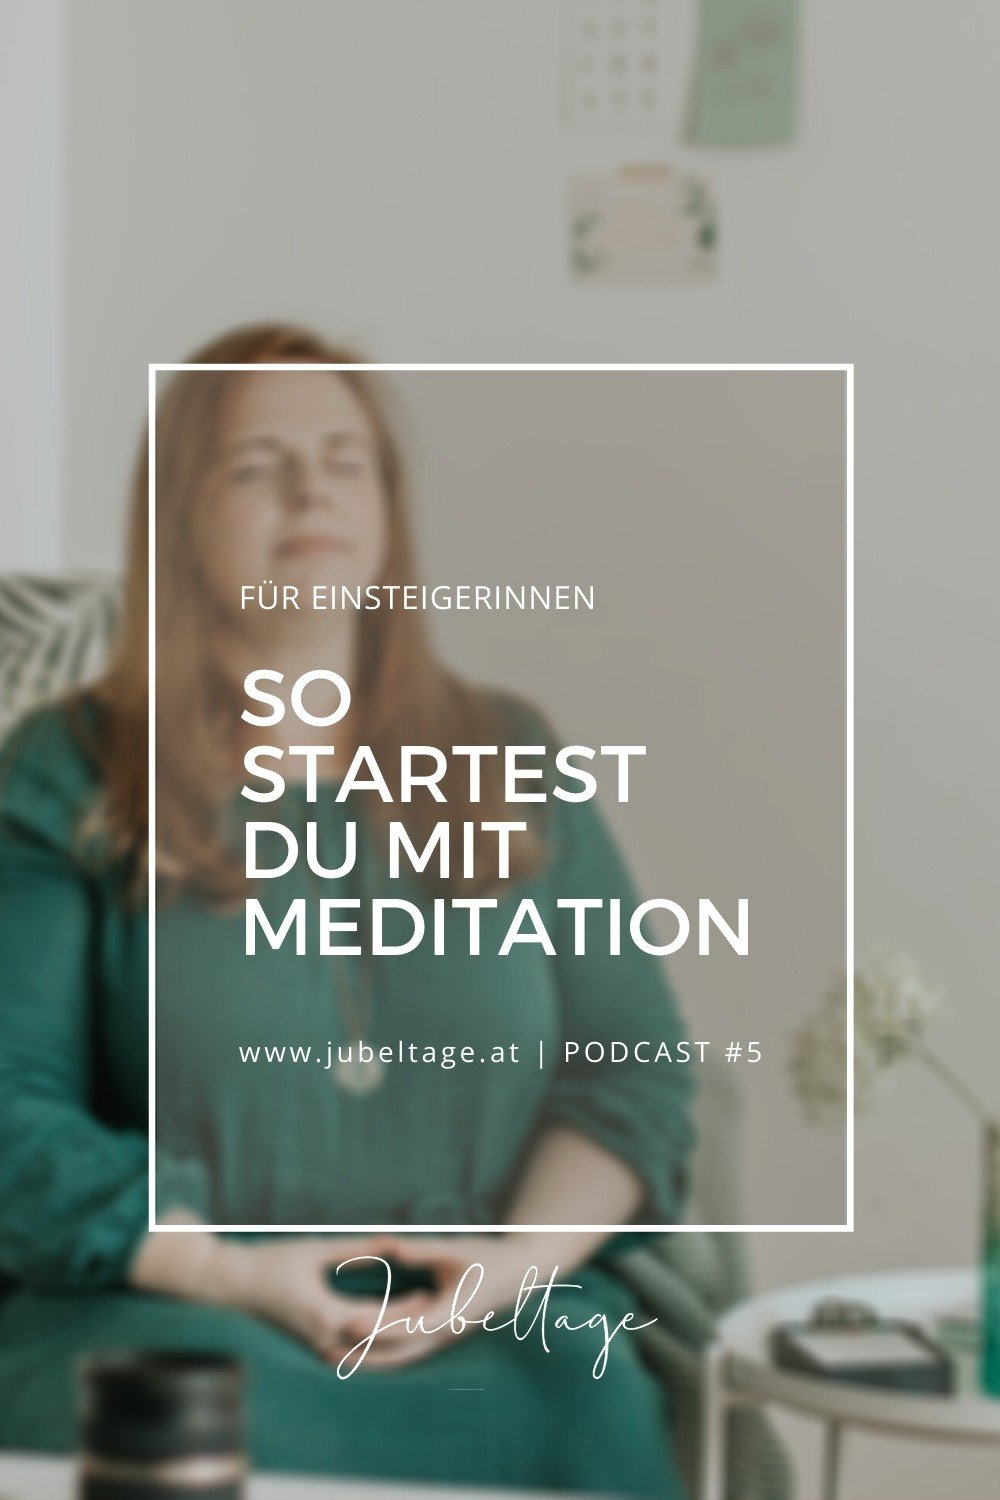 Jubeltage Podcast: So startest du mit Meditation